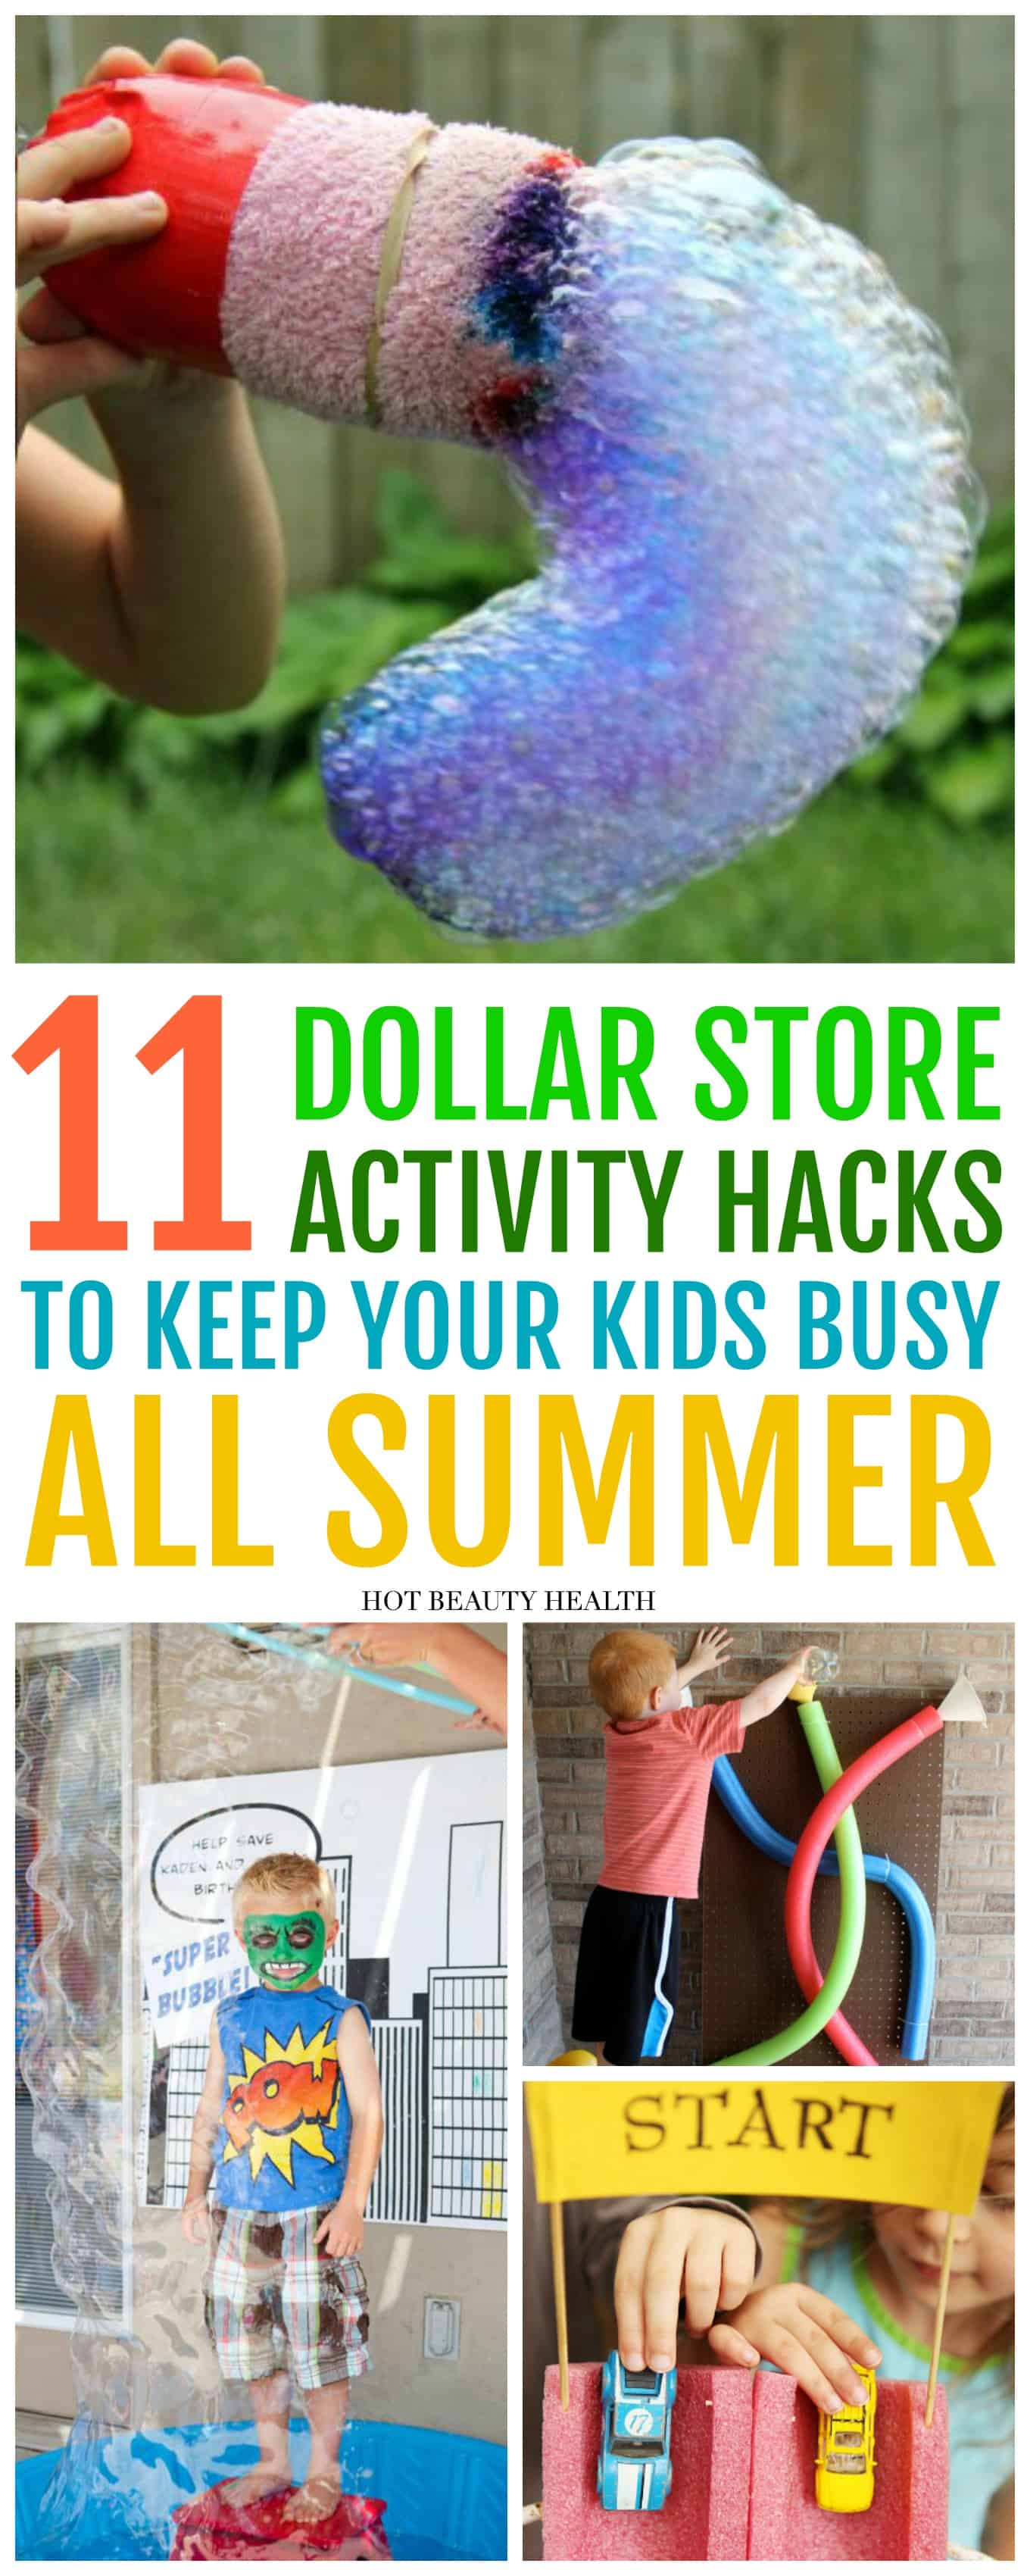 fun summer activities from dollar store